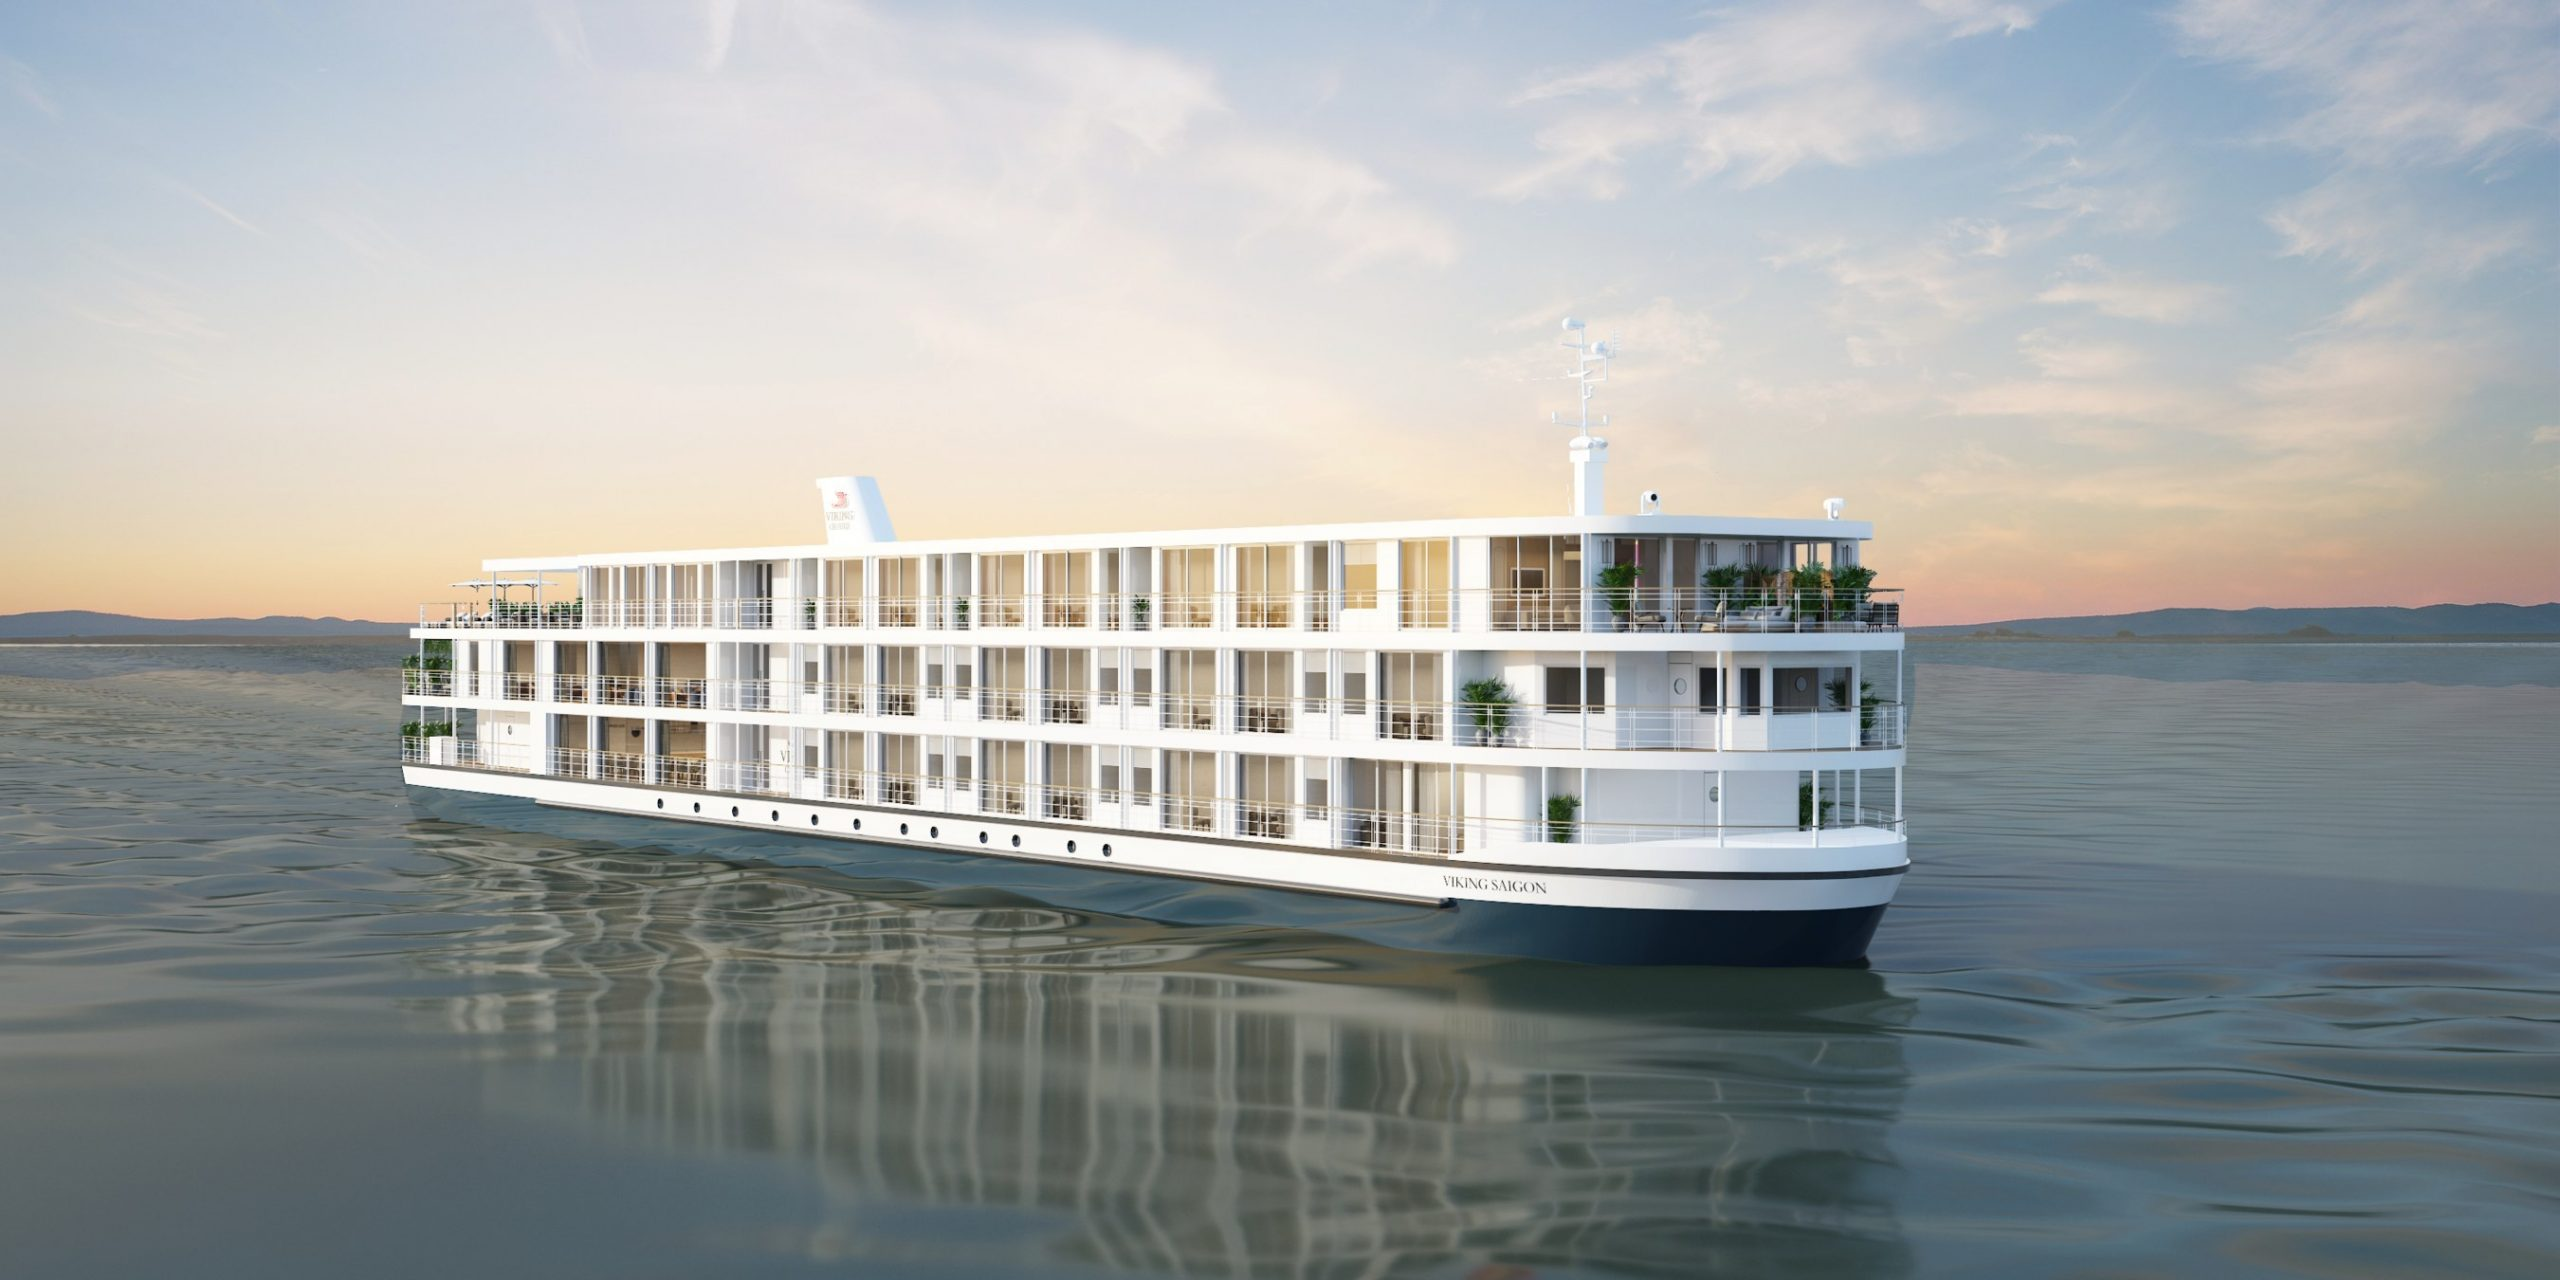 Debuting in summer 2021, the 80-guest Viking Saigon will sail Viking's Magnificent Mekong cruisetour. Guests on the three-deck Viking Saigon will enjoy a Spa & Fitness Center, Infinity Pool and open-air Sky Bar on the Upper Deck. For more information, visit www.viking.com.